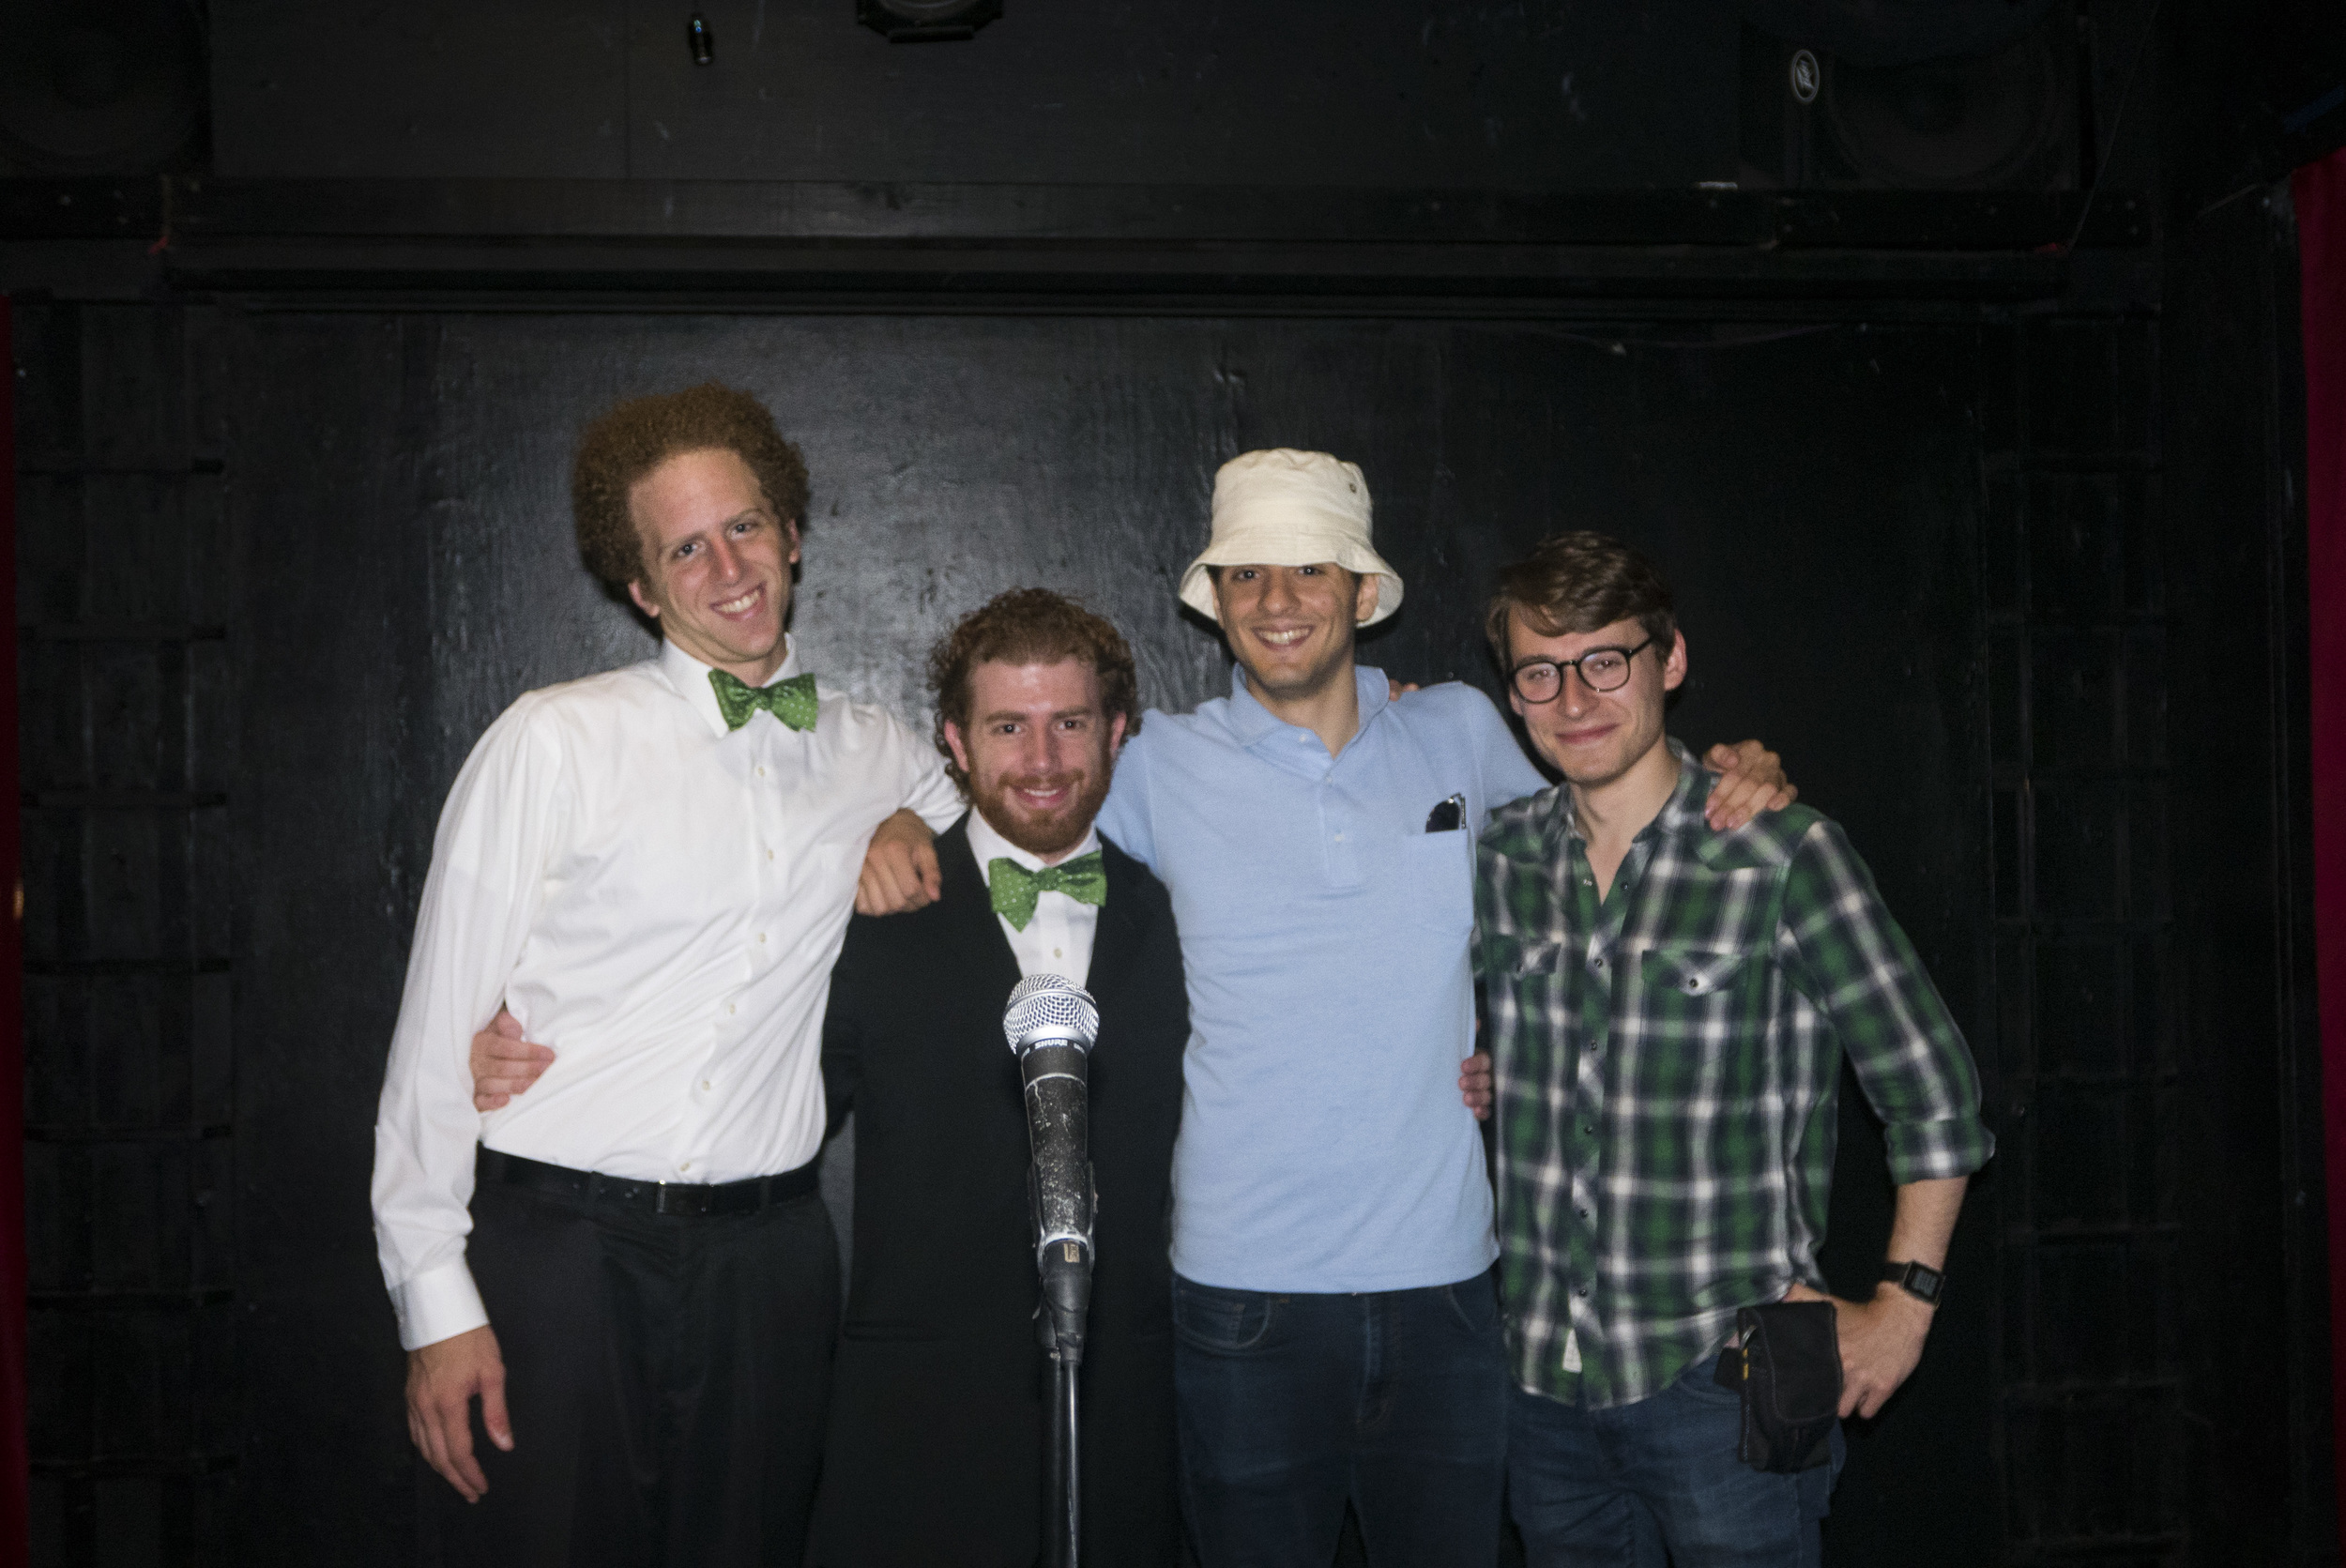 The Producers with The Broccoli Boys at Under St. Marks Theatre in The Village.